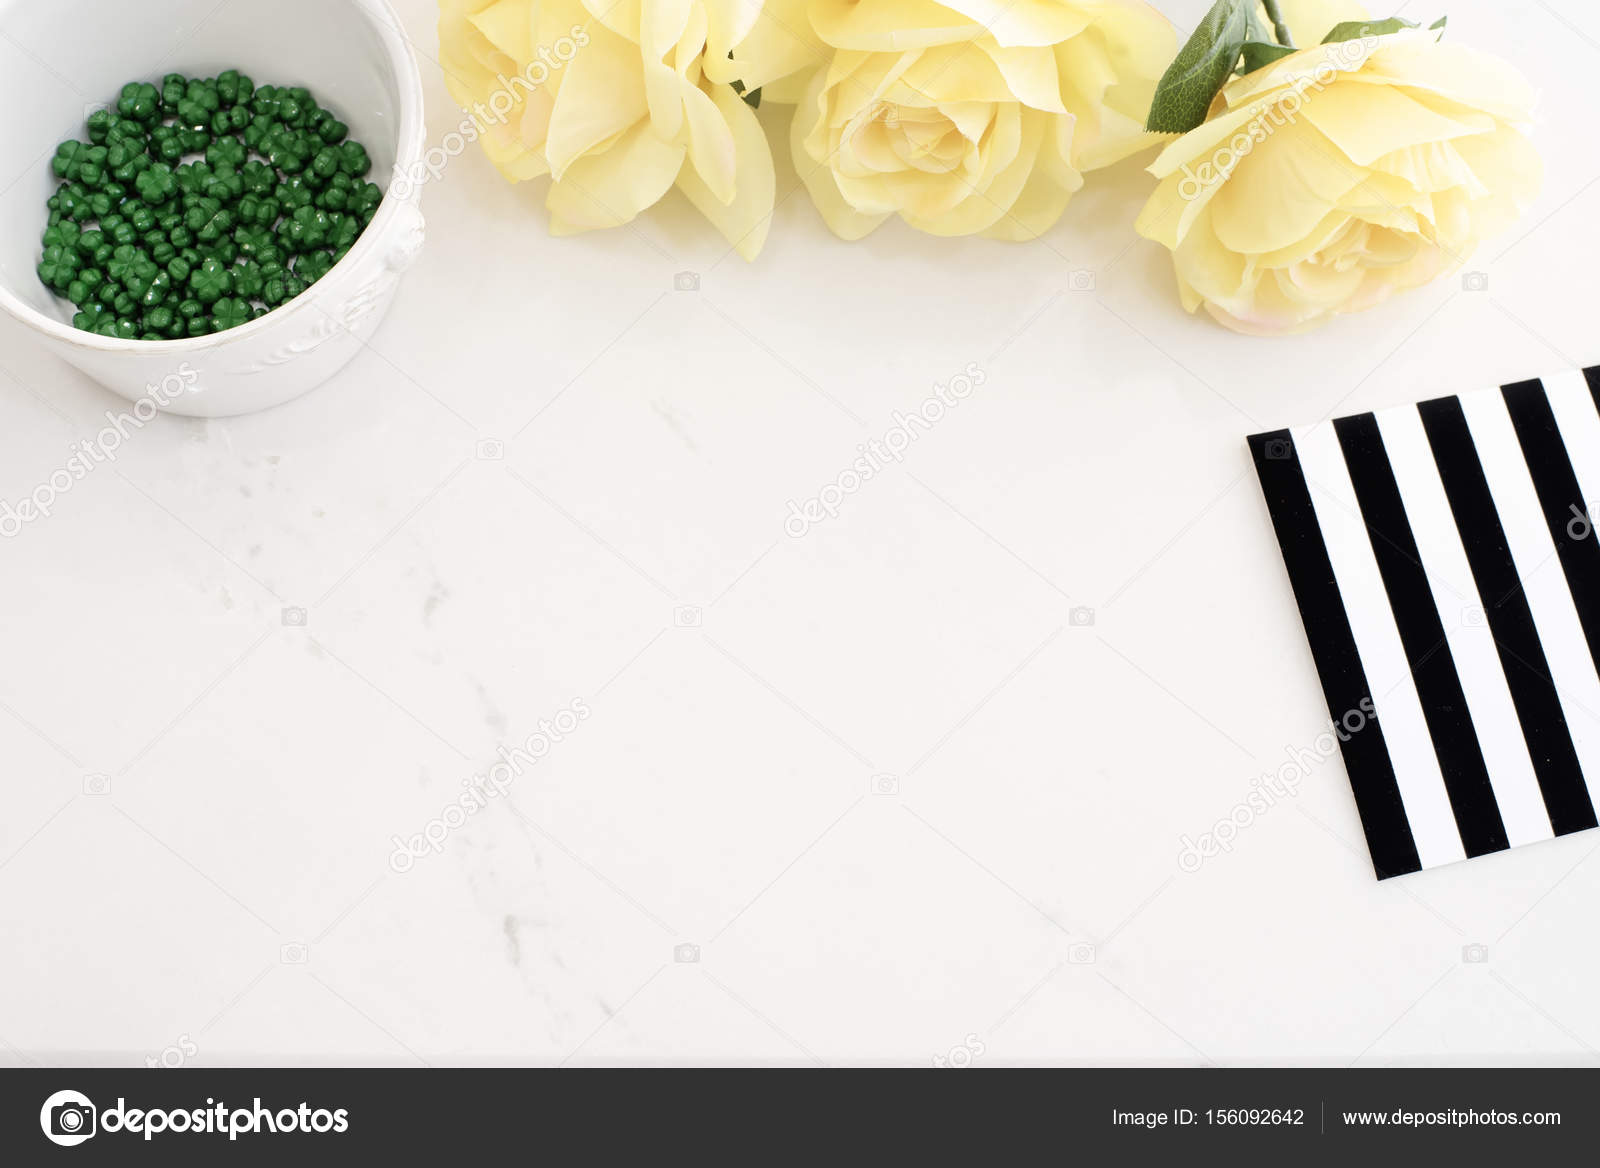 Rose Gold Marble Desktop Wallpaper Light Marble Stylish Desktop With Yellow Roses Black White Stripe Design Header Website Or Hero Website Top View Empty Place Copy Space Feminine Background White